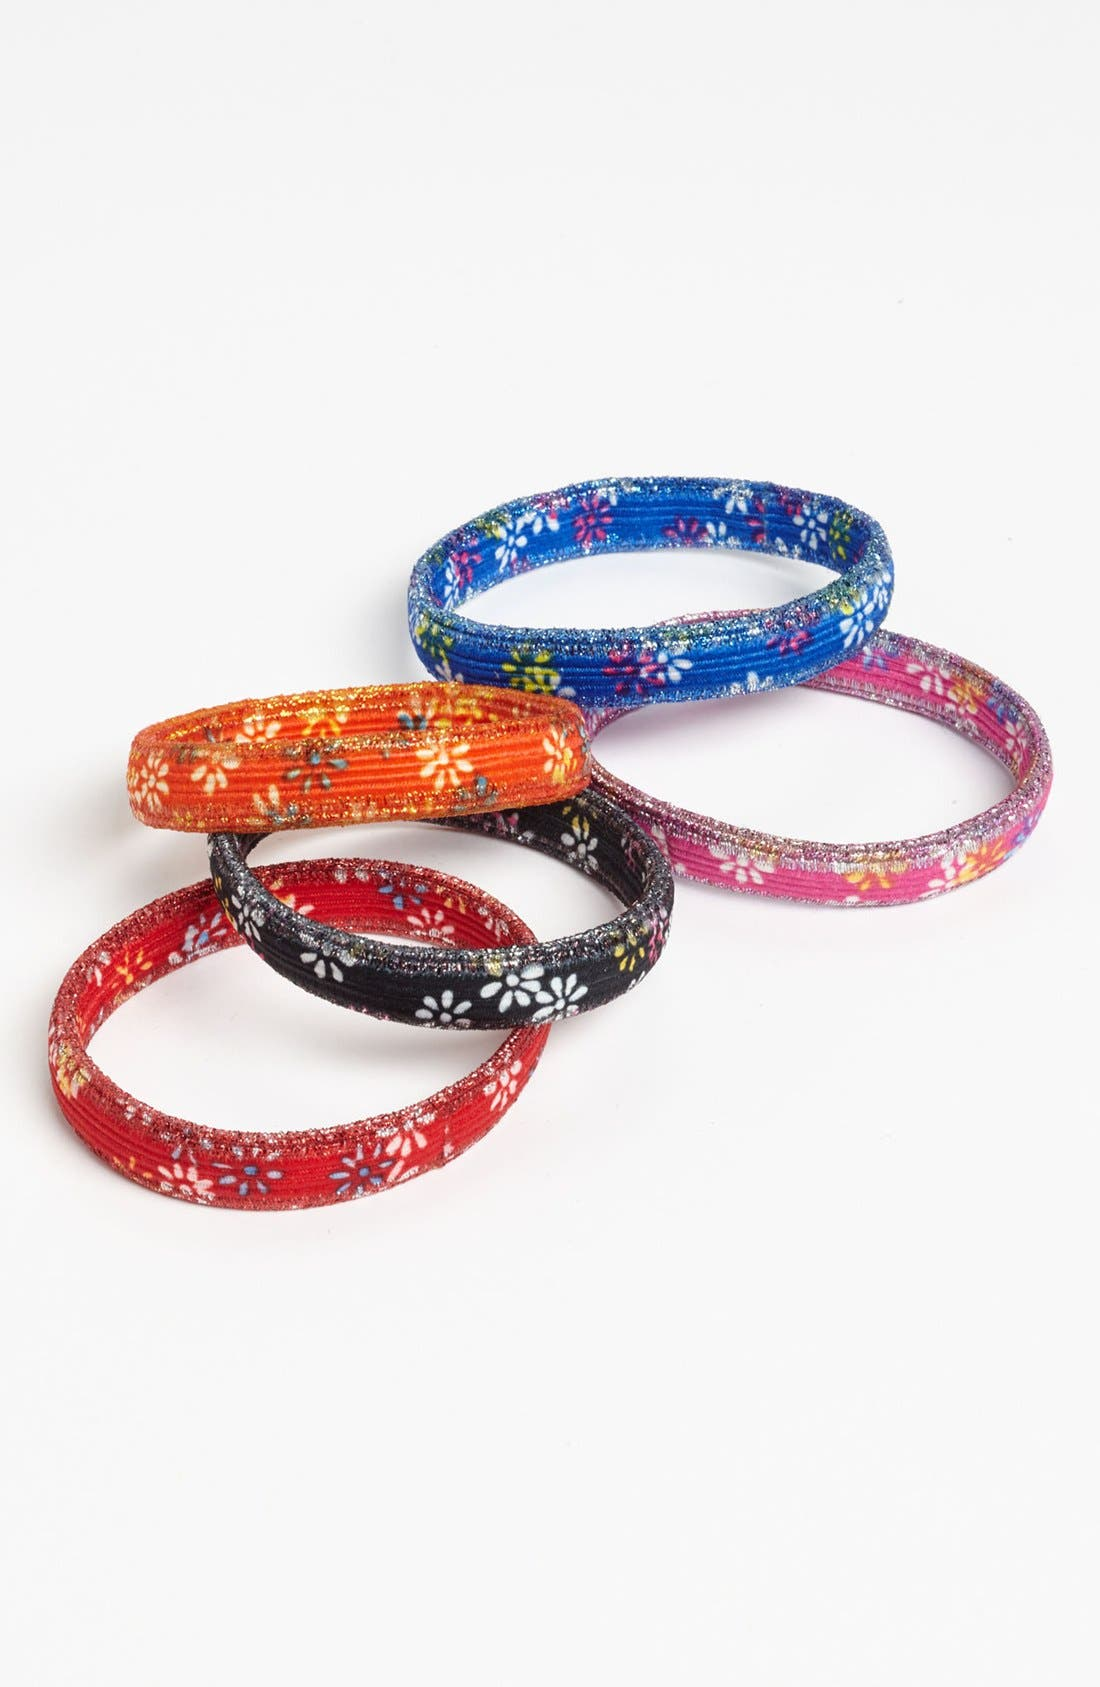 Alternate Image 1 Selected - Tasha 'Daisy' Hair Ties (Set of 5)